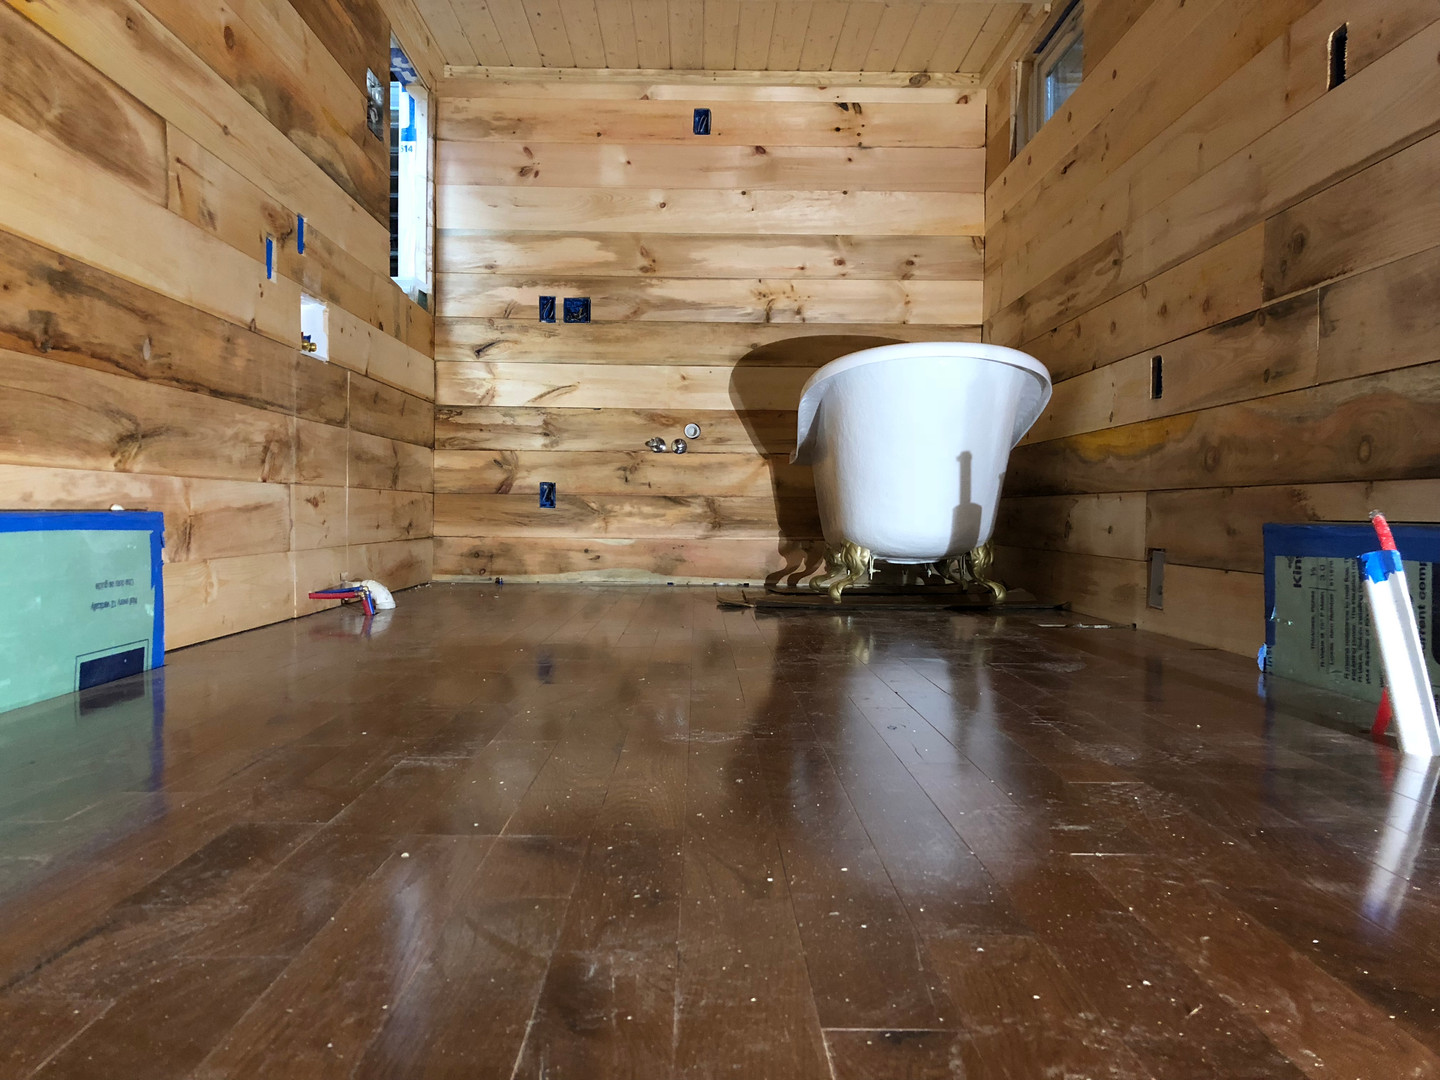 Flooring Finished + Clawfoot Tub in Place